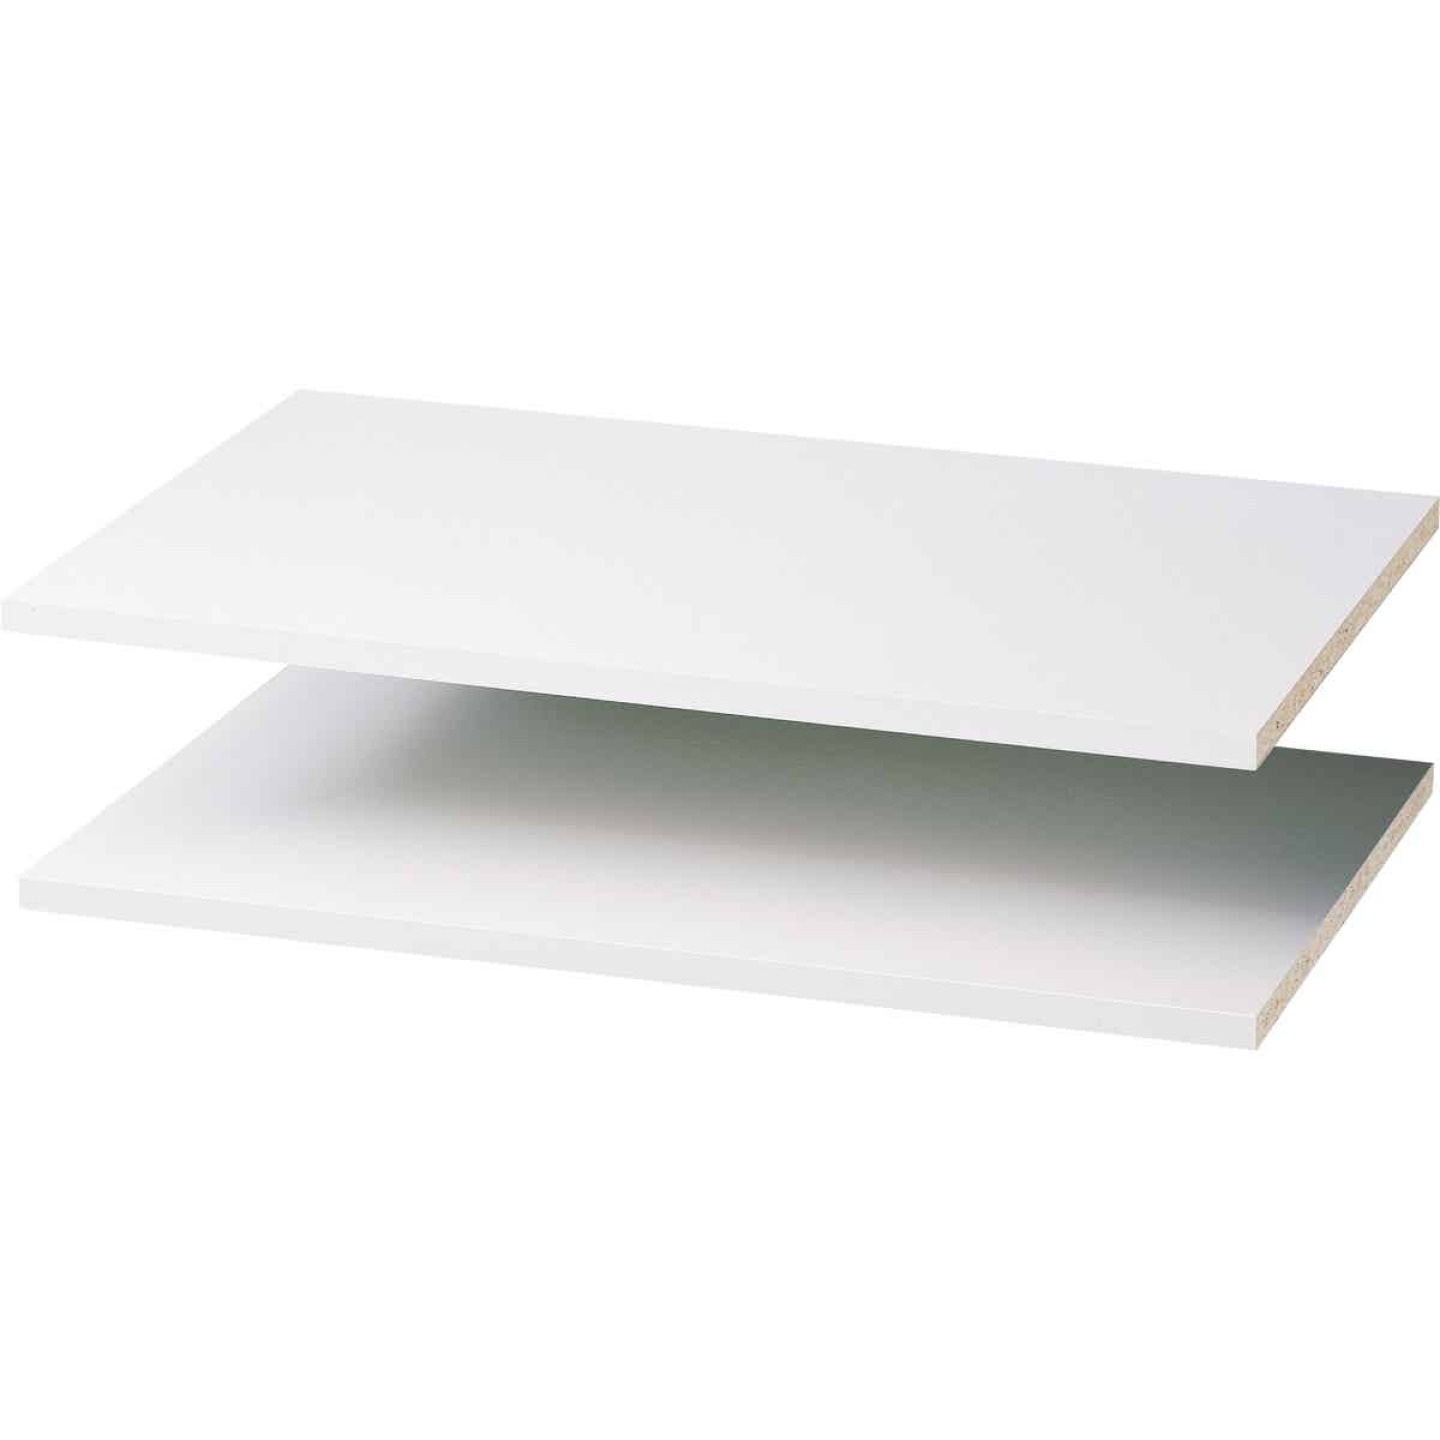 Easy Track 2 Ft. W. x 14 In. D. Laminated Closet Shelf, White (2-Pack) Image 2